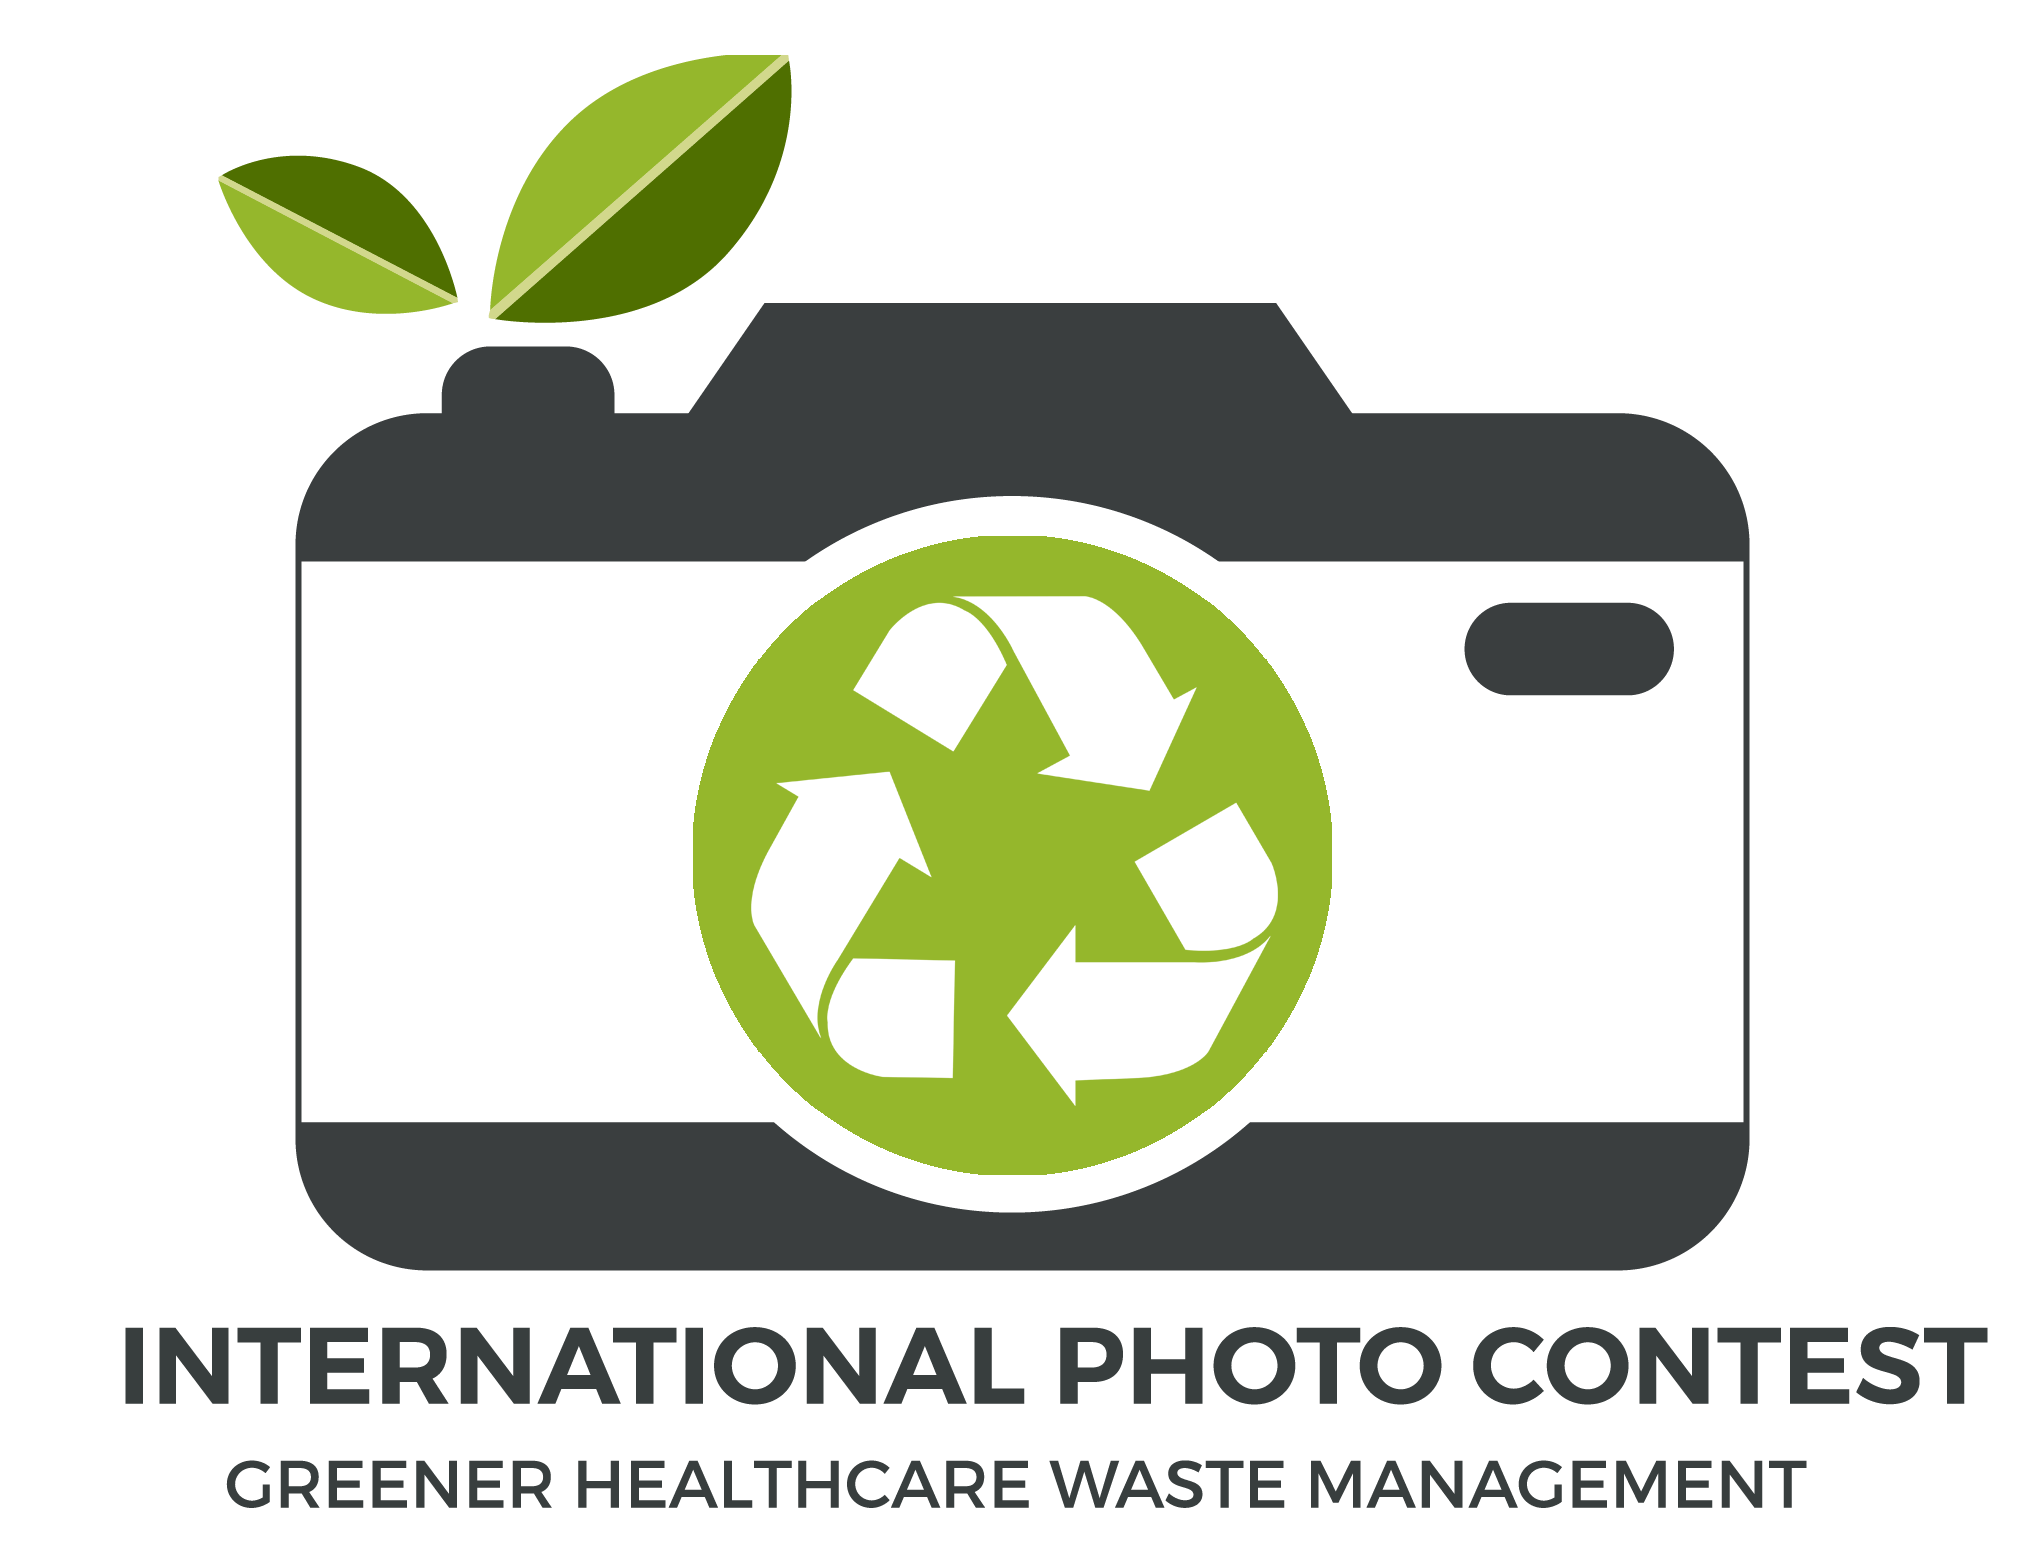 International Photo Contest on Greener Healthcare Waste Management - logo